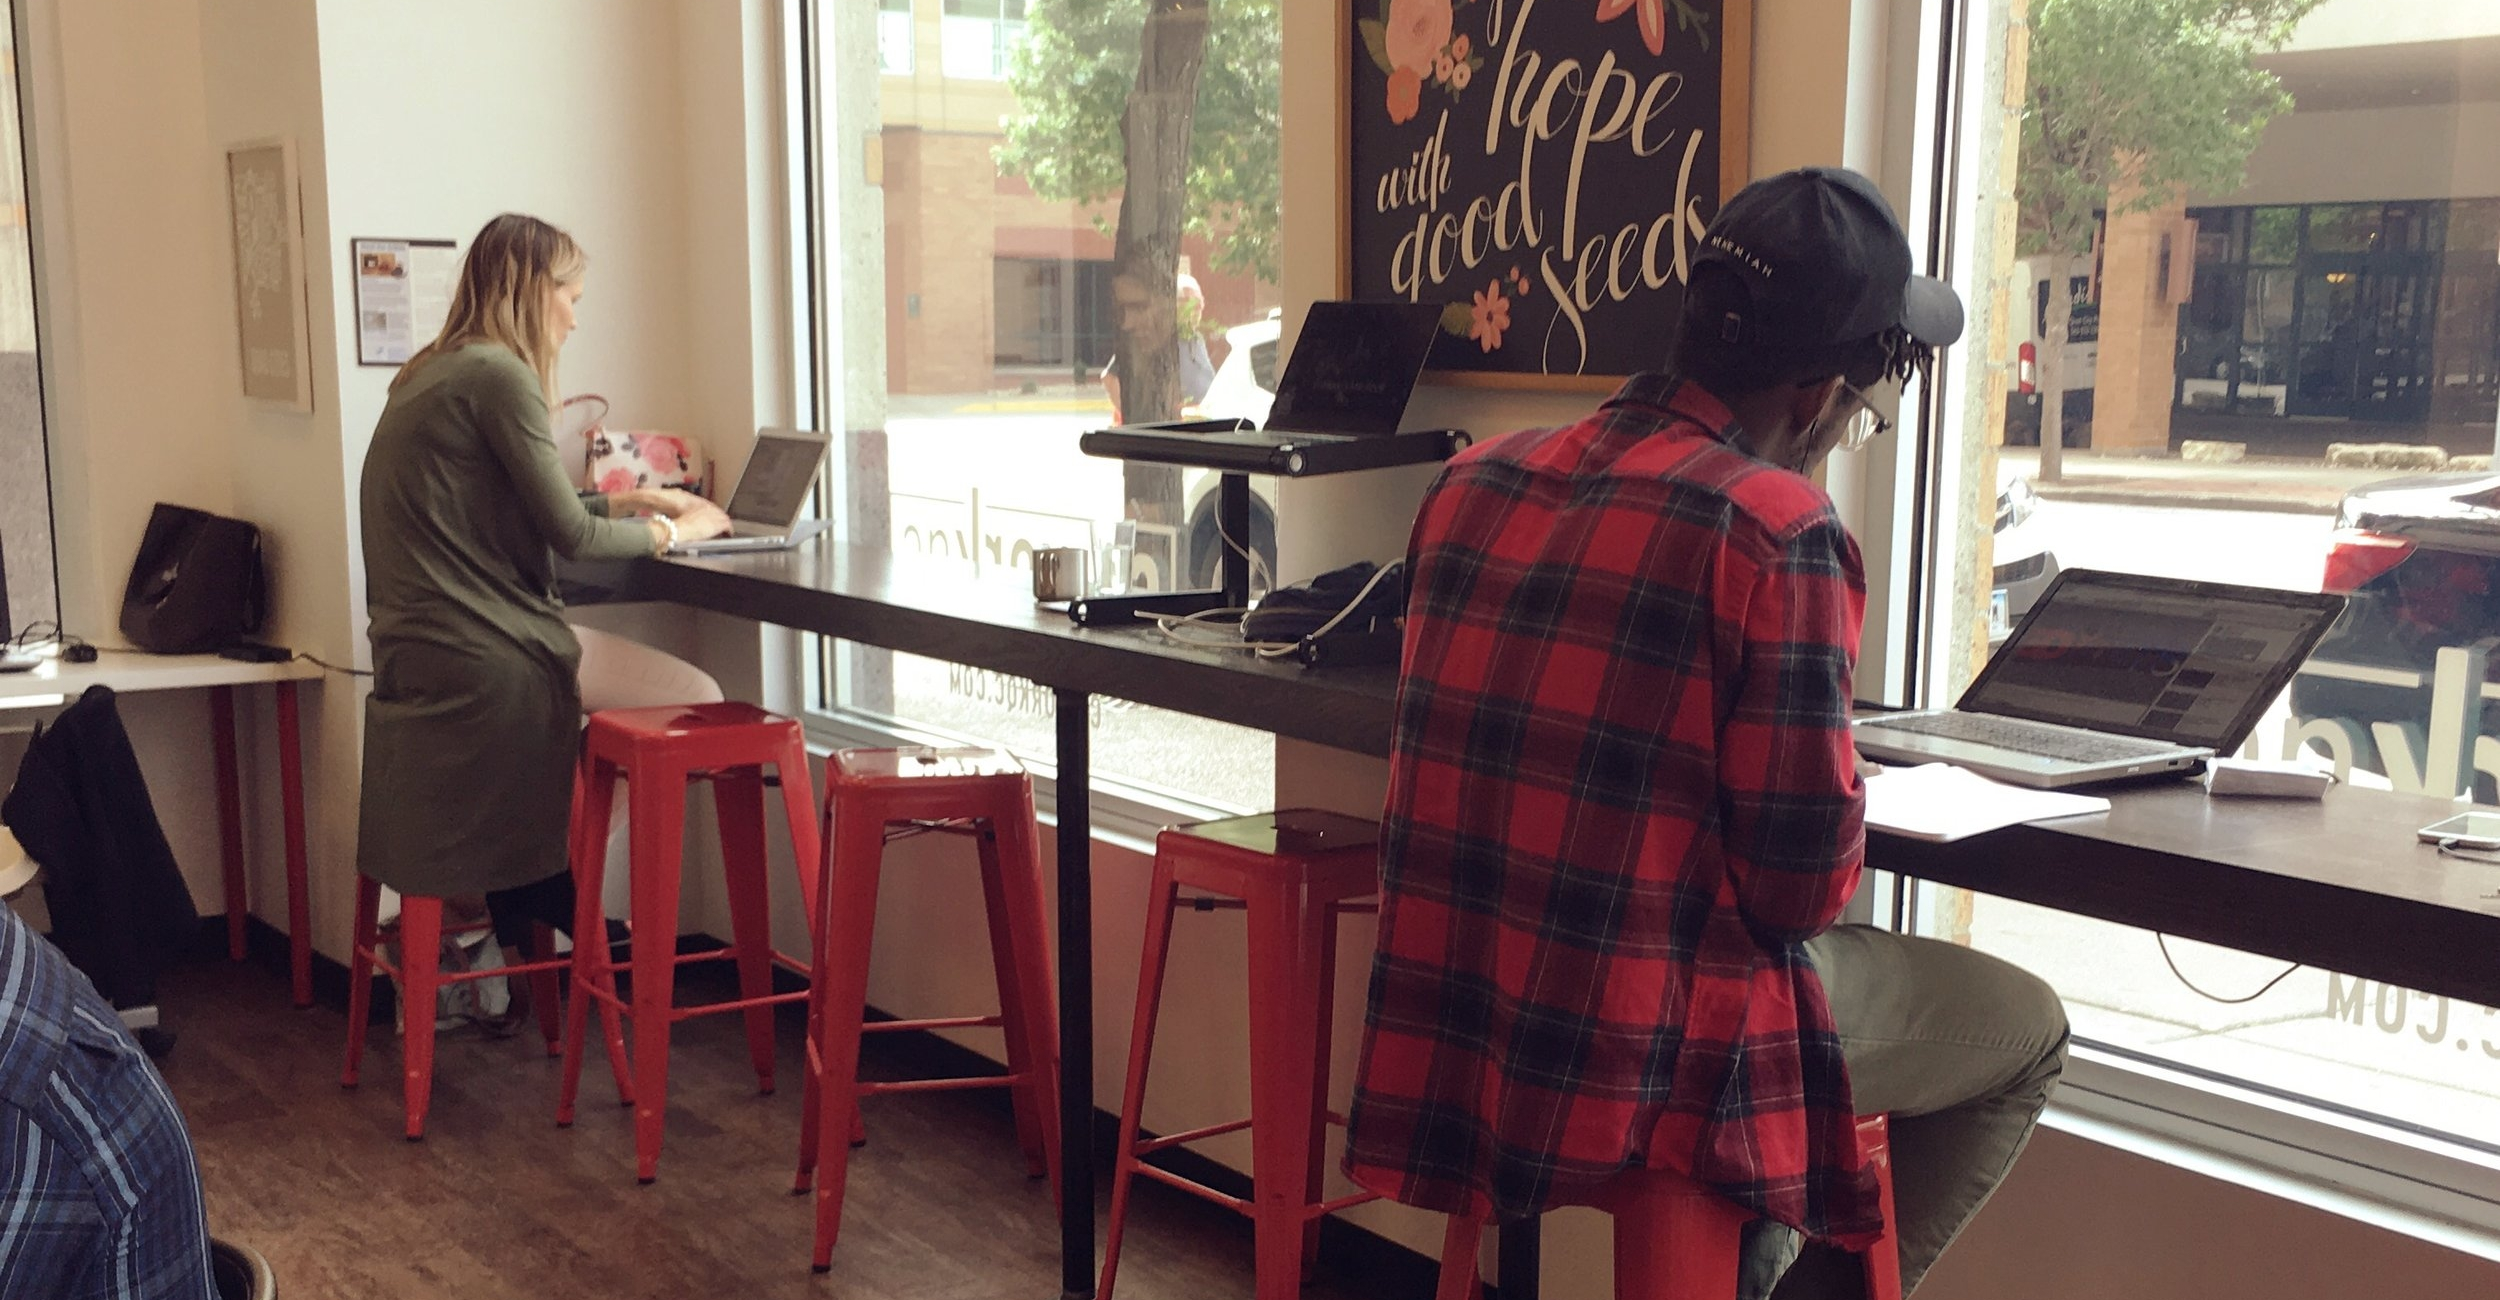 OPEN COWORKING - Grab your laptop and find a seat. Enjoy complimentary coffee and snacks, fast wi-fi and get to know your coworkers in our open coworking space.Schedule a drop-in day